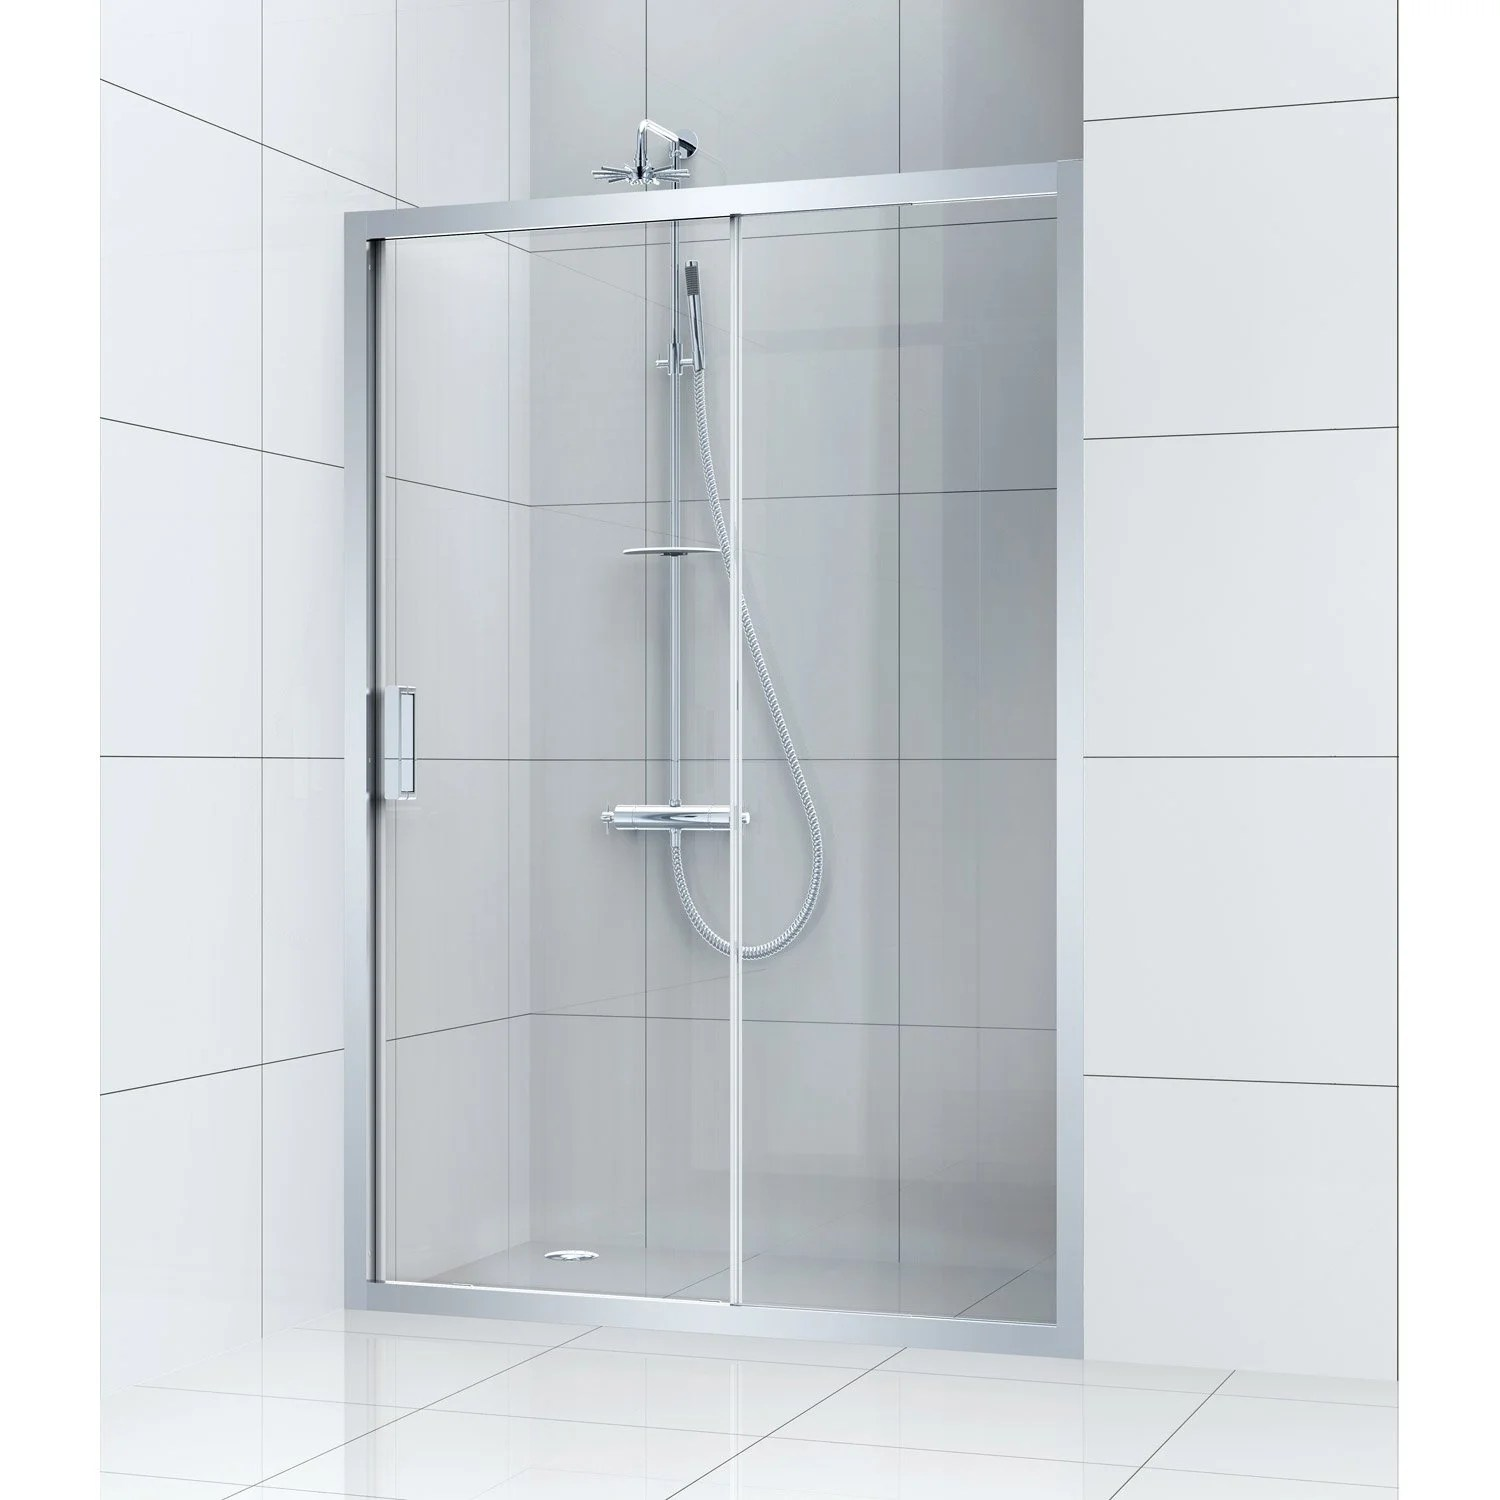 Porte Coulissante Magasin Porte De Douche Coulissante 140 Cm Transparent Charm